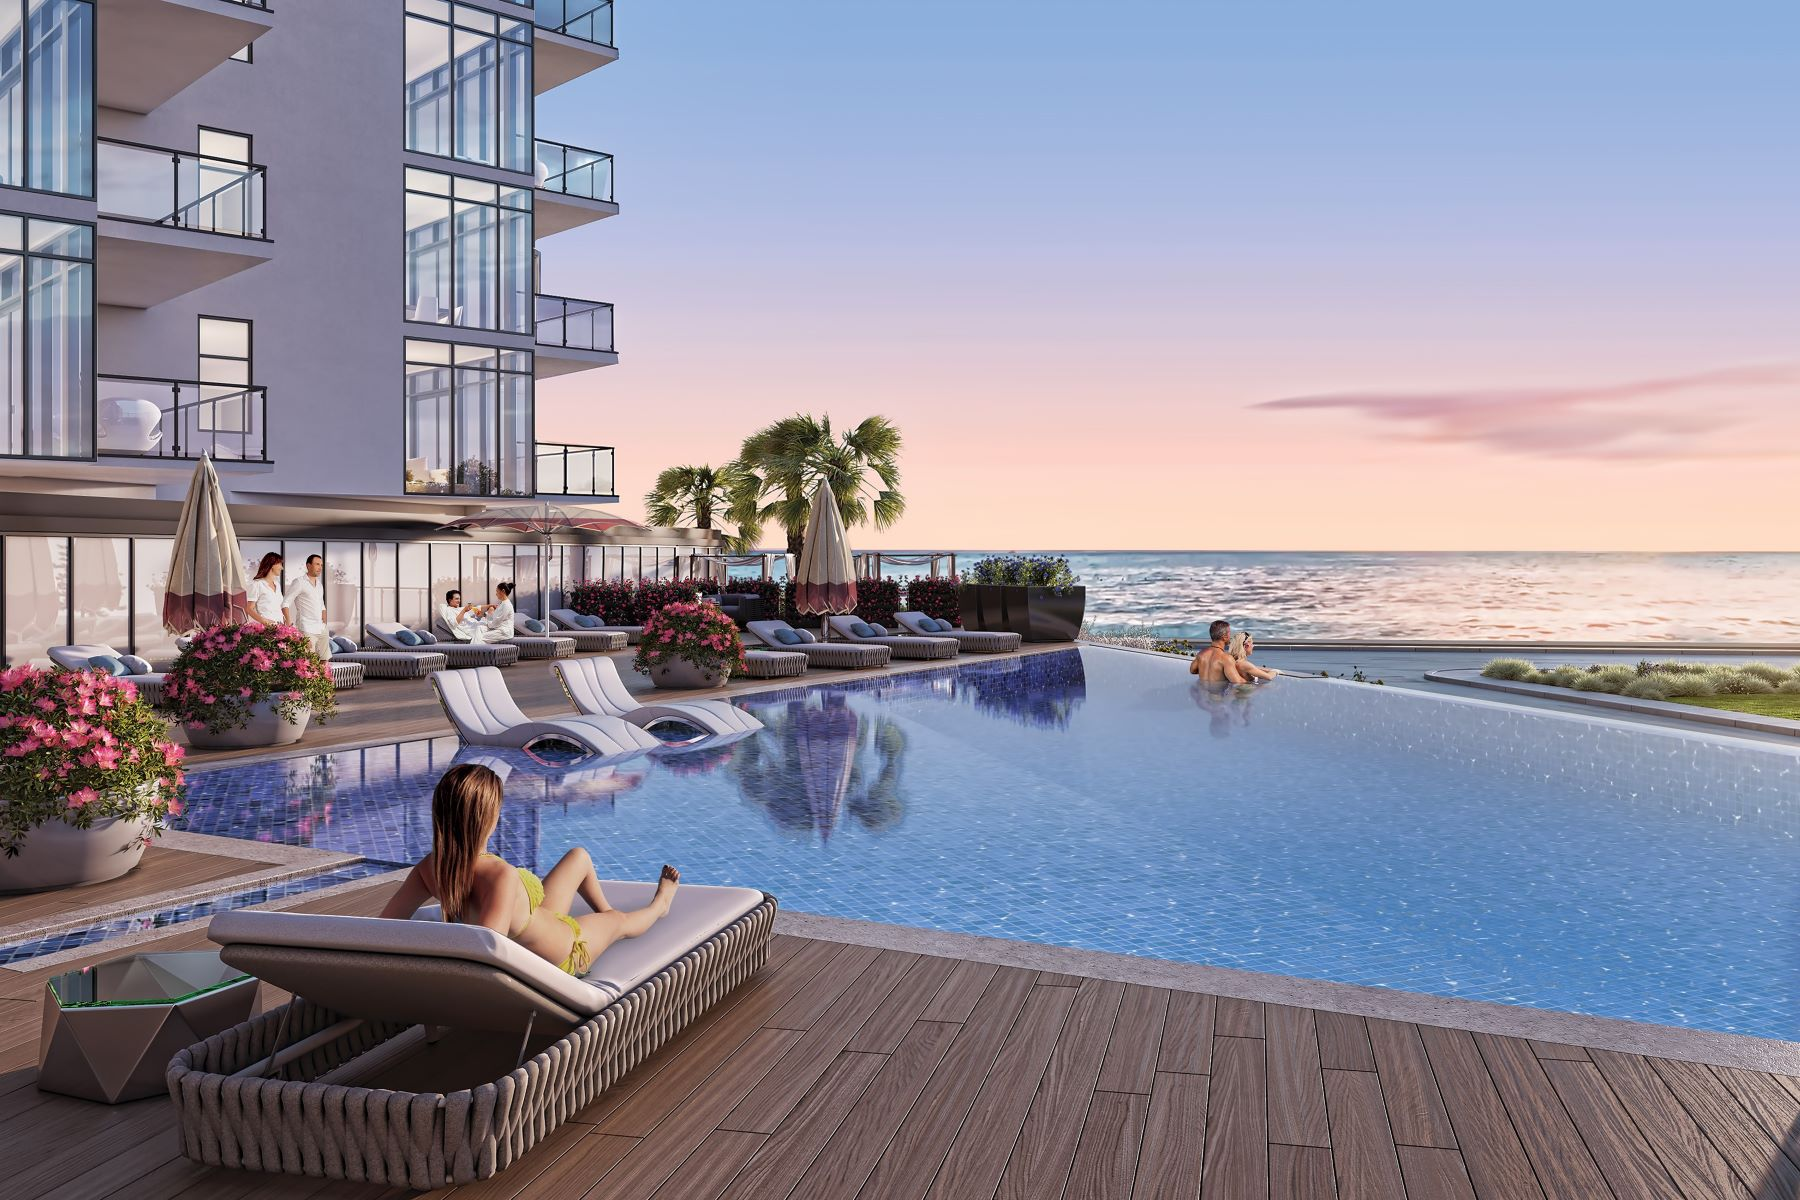 Additional photo for property listing at South Beach at Long Branch 350 Ocean Avenue 801, Long Branch, New Jersey 07740 United States